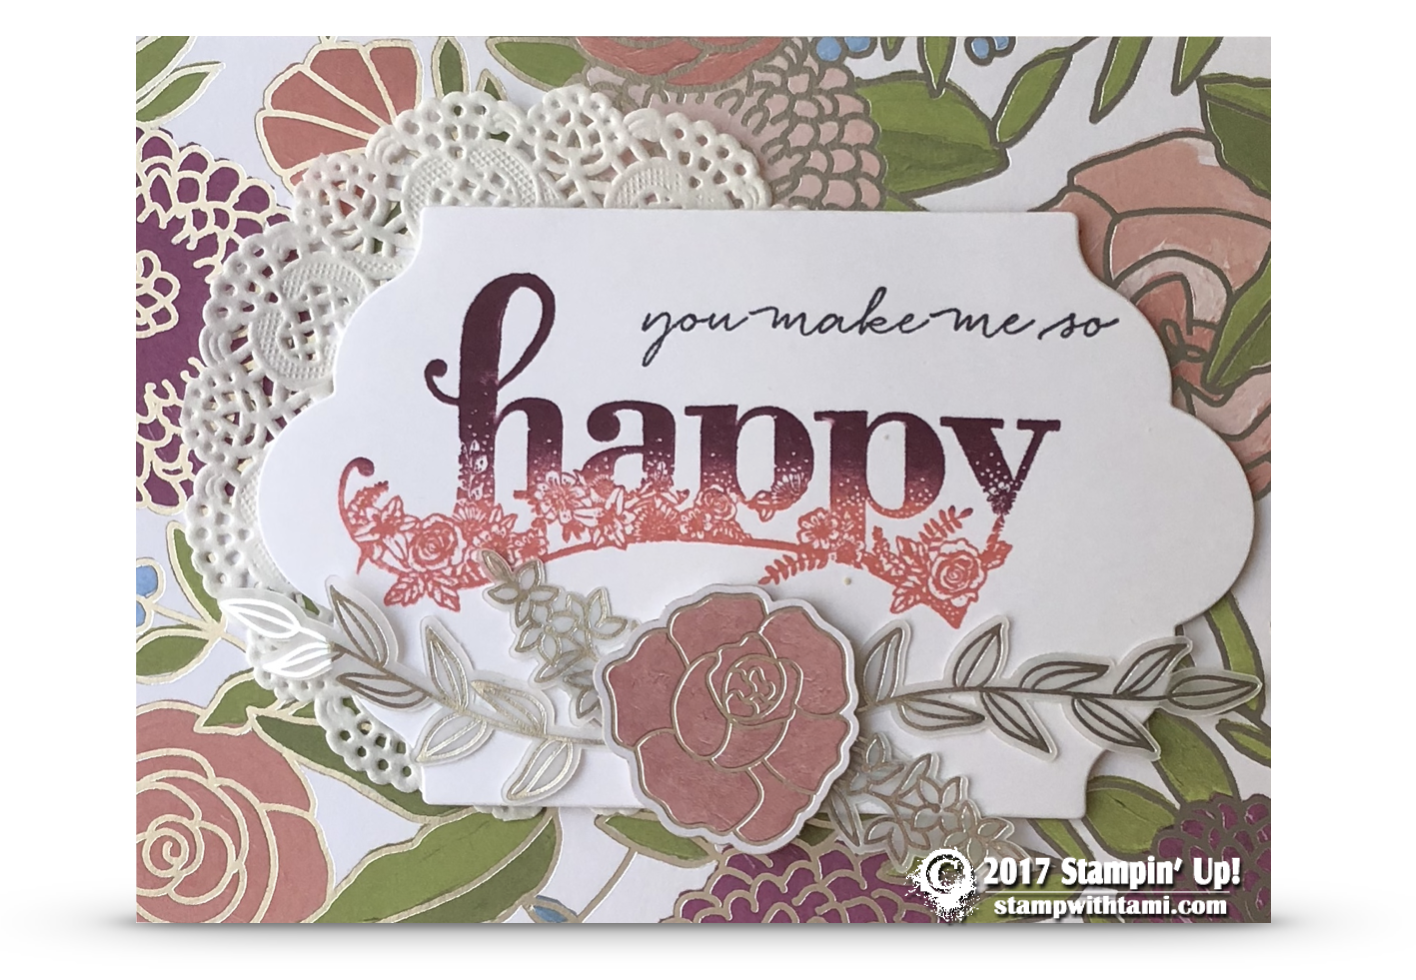 Card Today S Share Is A Gorgeous You Make Me So Hy From The New Upcoming Stampin Up Wishes Stamp Set